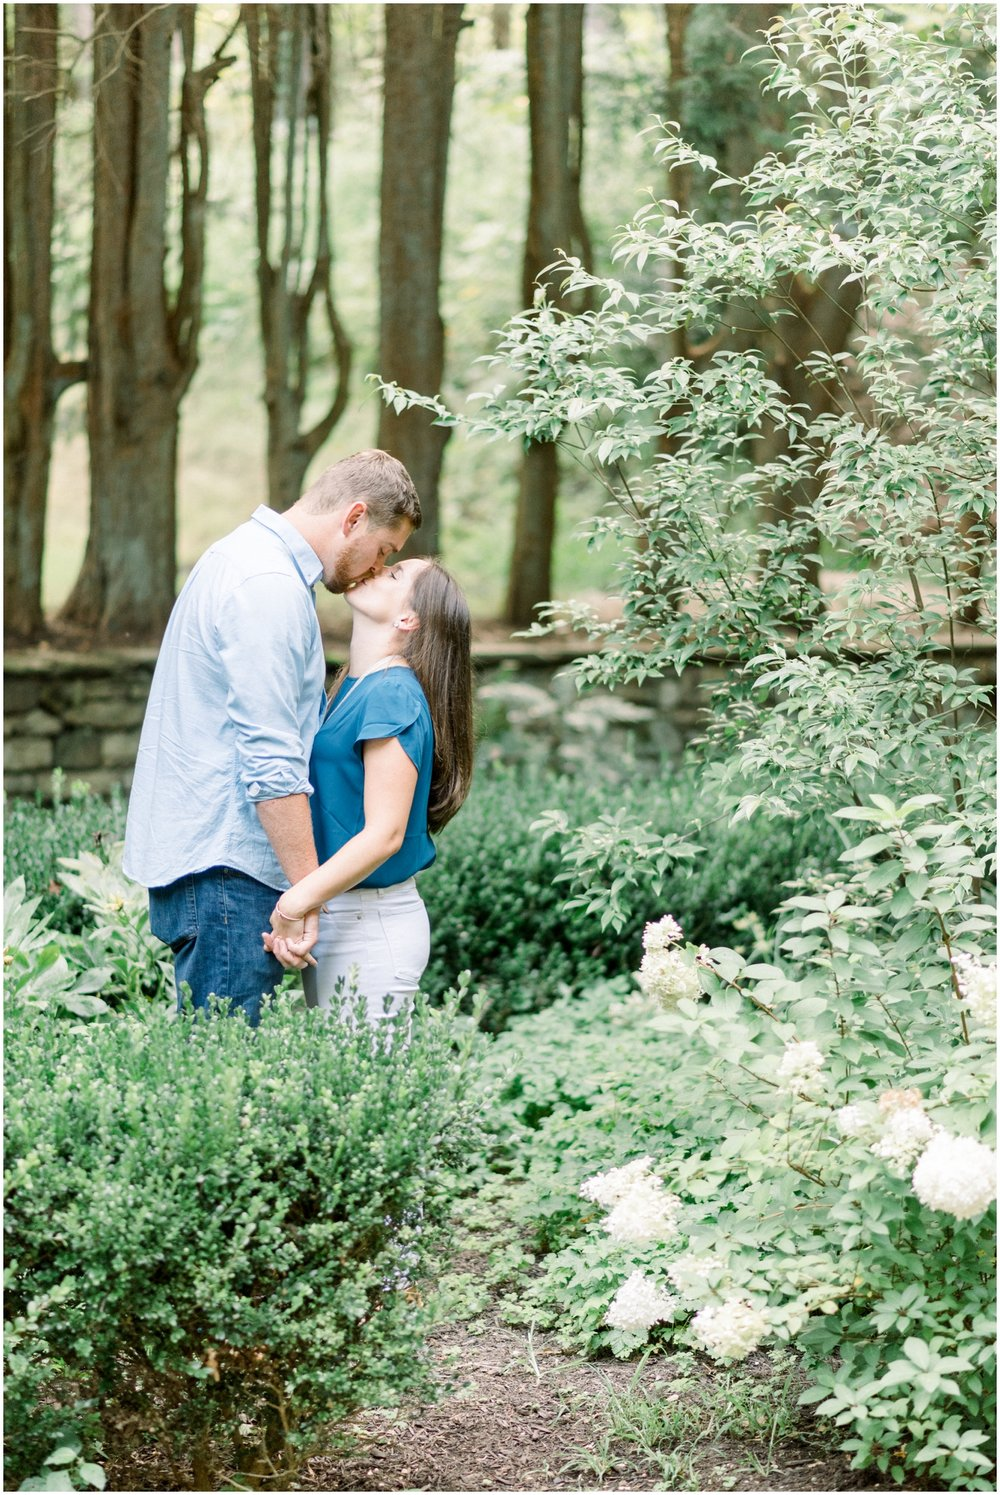 Summer Engagement Session at Hunting Hill Mansion - Krista Brackin Photography_0009.jpg